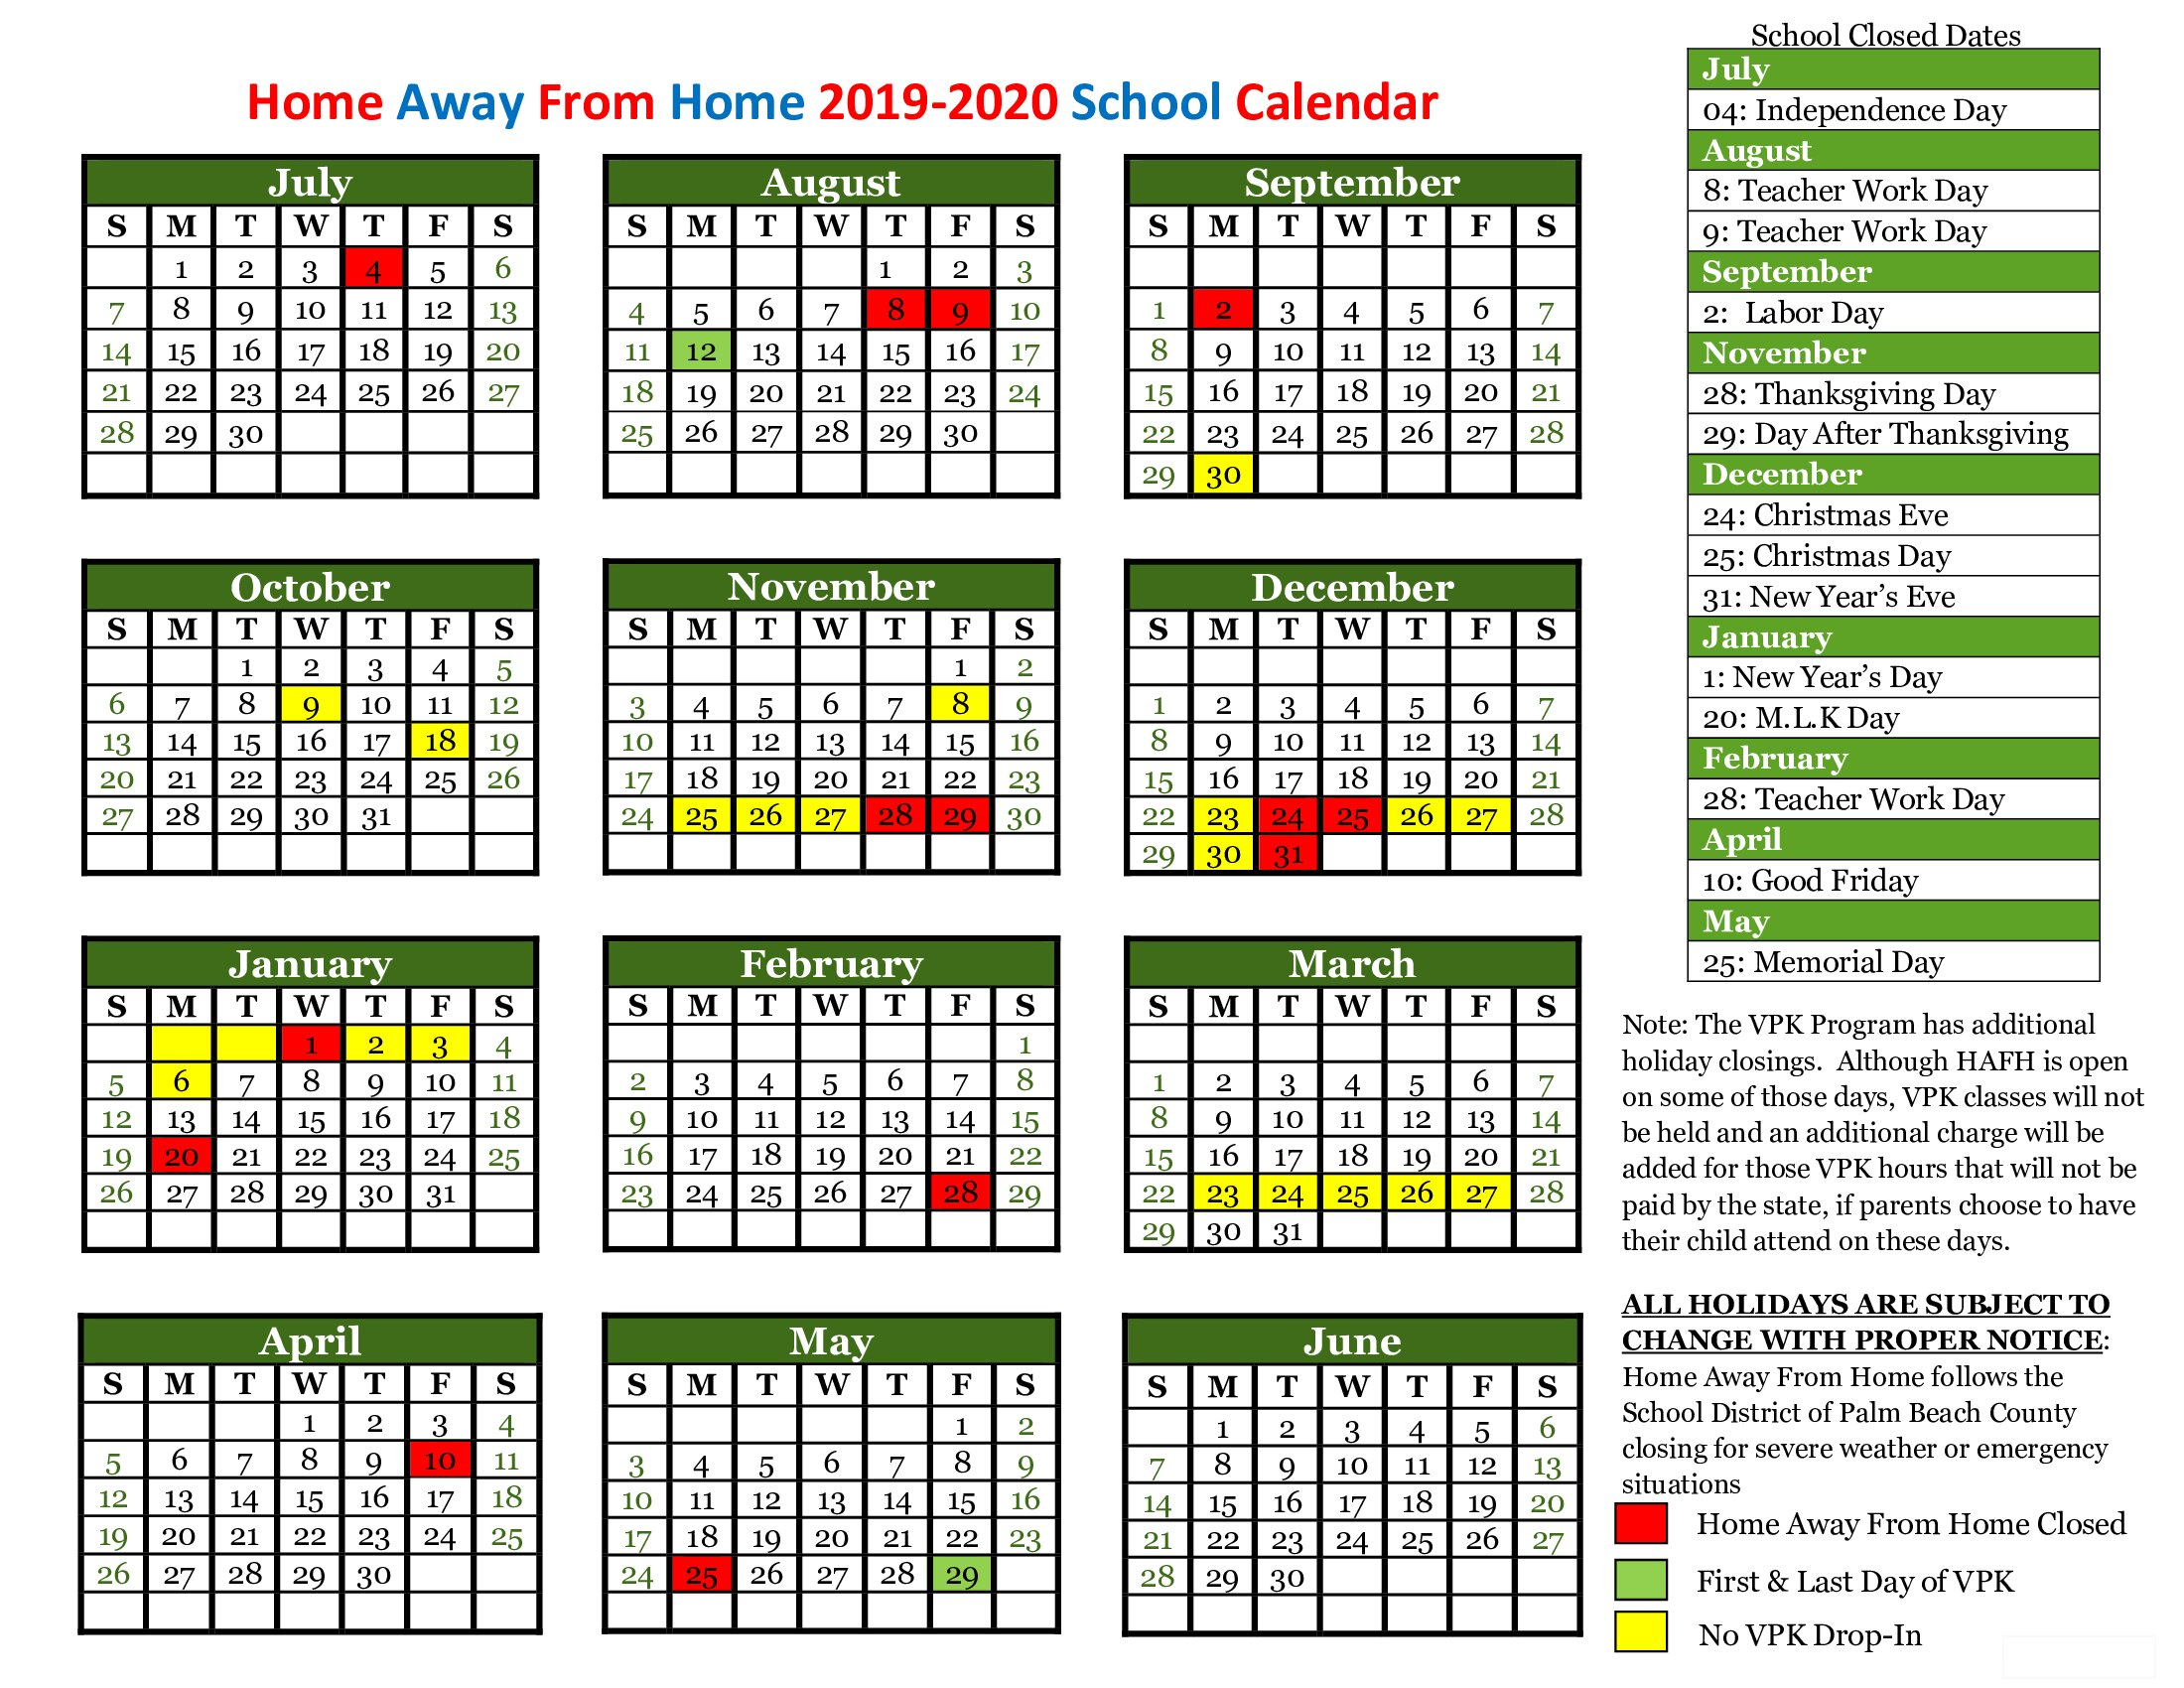 Child Care Holiday Schedule - View School Closings | Home Regarding Palm Beach State School Calendar